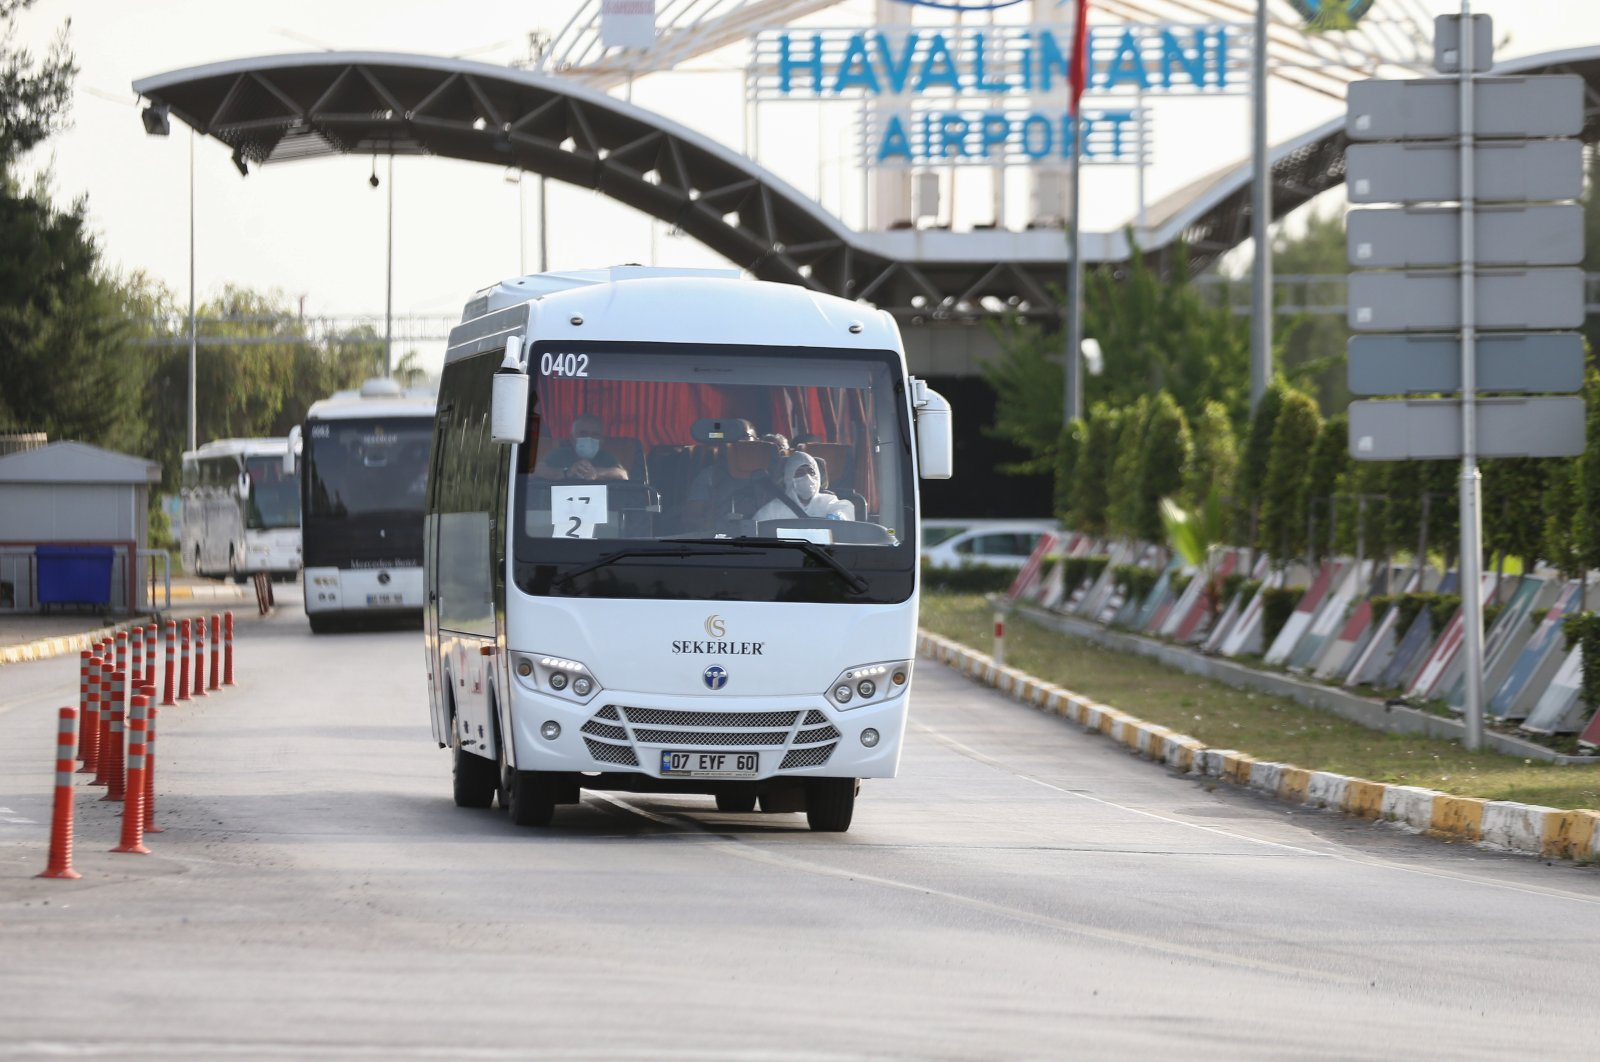 More than 300 Turks were repatriated to their homeland amid the novel coronavirus outbreak. A bus brings the evacuated from the airport to a dormitory in Ordu, May 16, 2020. (AA Photo)